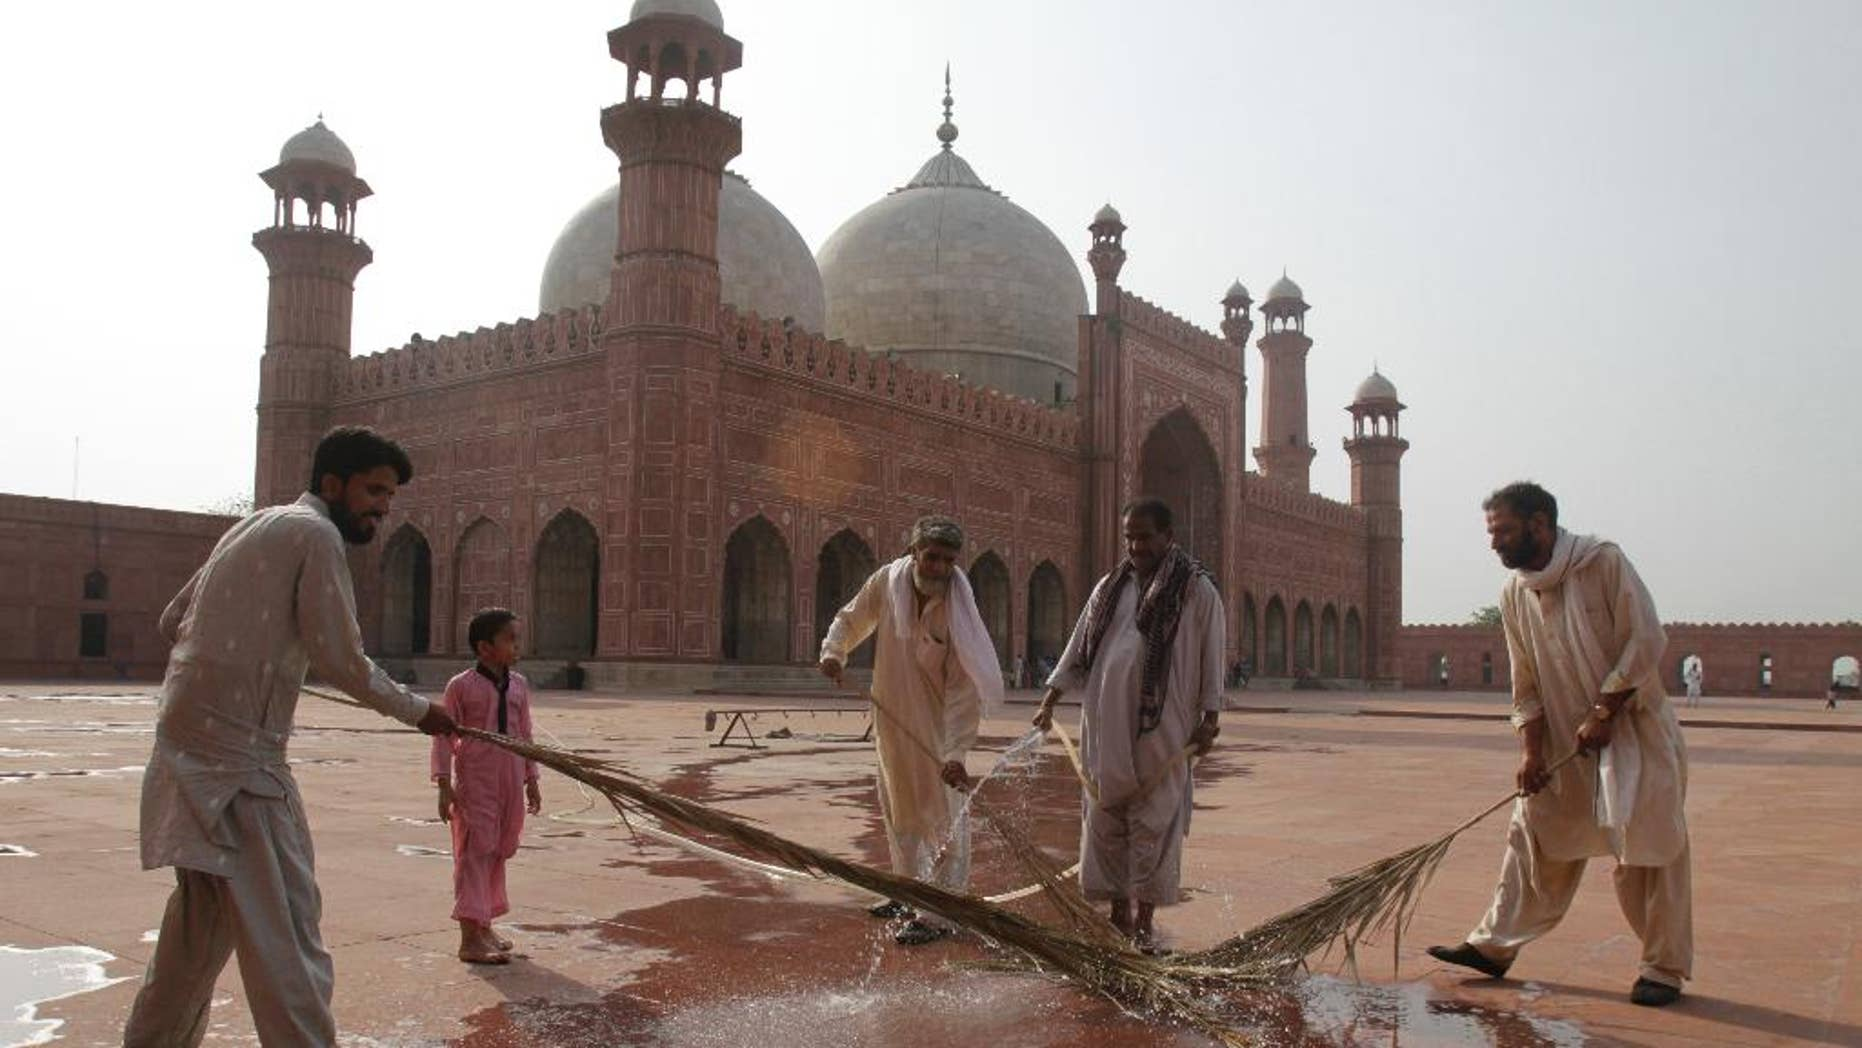 Preparations are in progress for the upcoming Ramadan at the 17th century Badshahi mosque in Lahore, Pakistan, Wednesday, June 17, 2015. Muslims throughout the world mark the month of Ramadan, the holiest month in the Islamic calendar, with dawn to dusk fasting. (AP Photo/K.M. Chaudary)